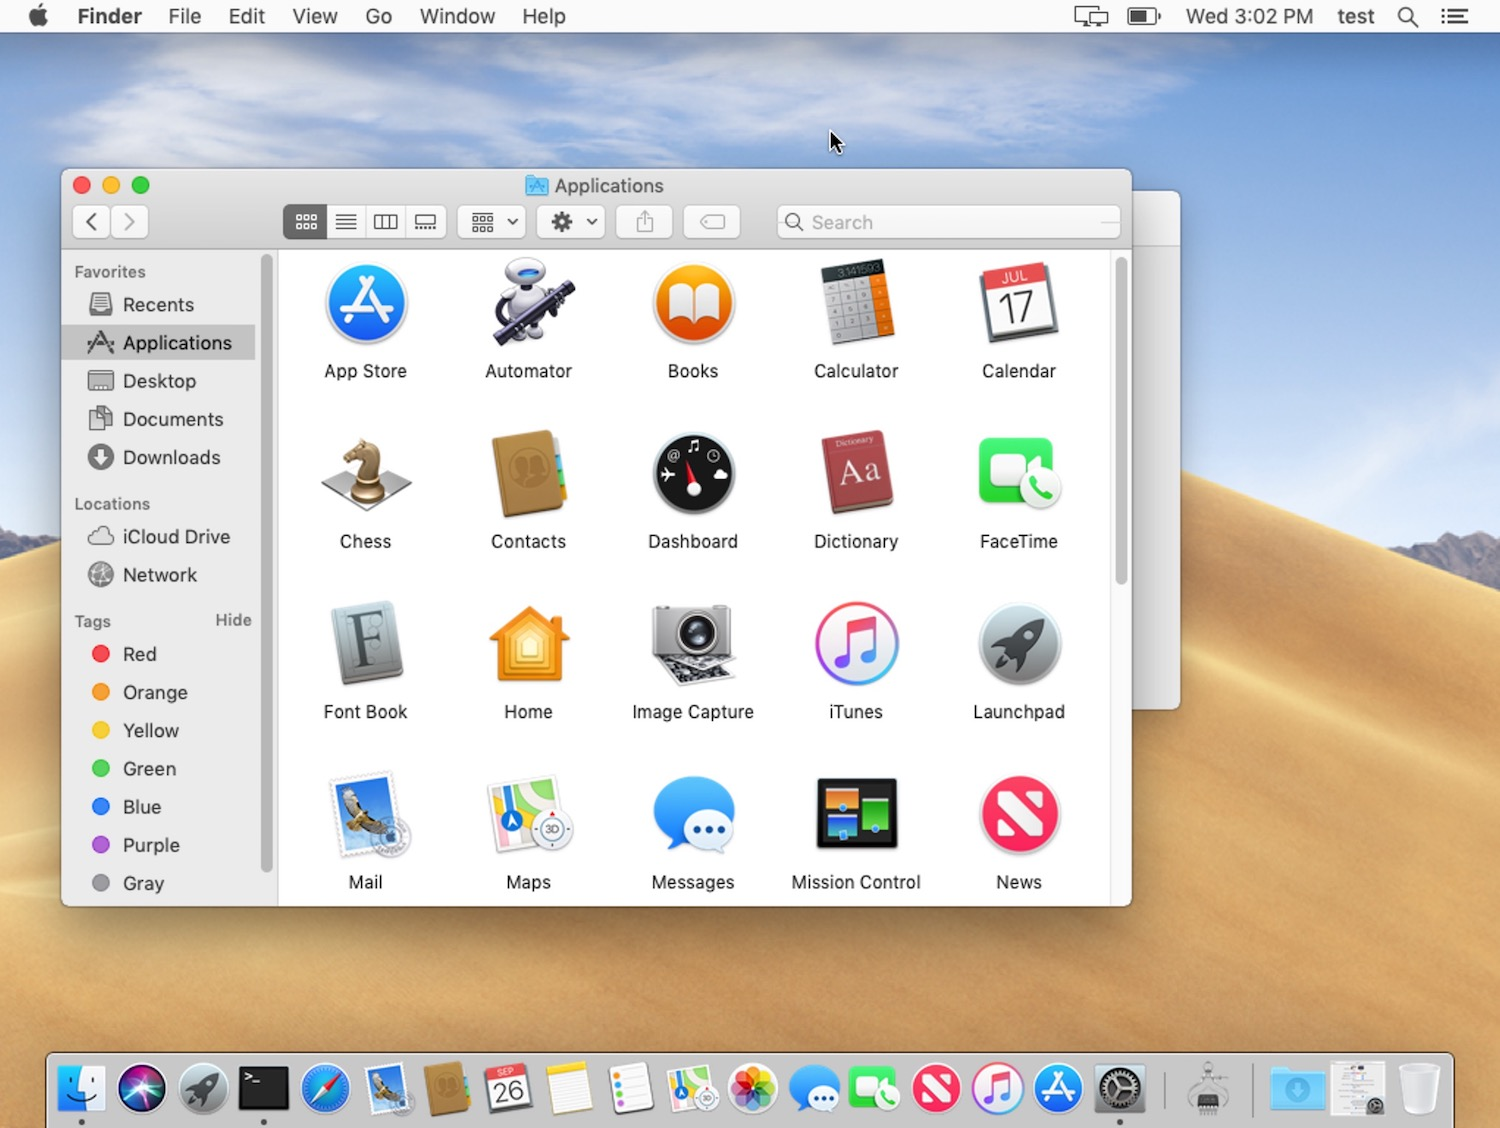 Light mode theme in Mac OS